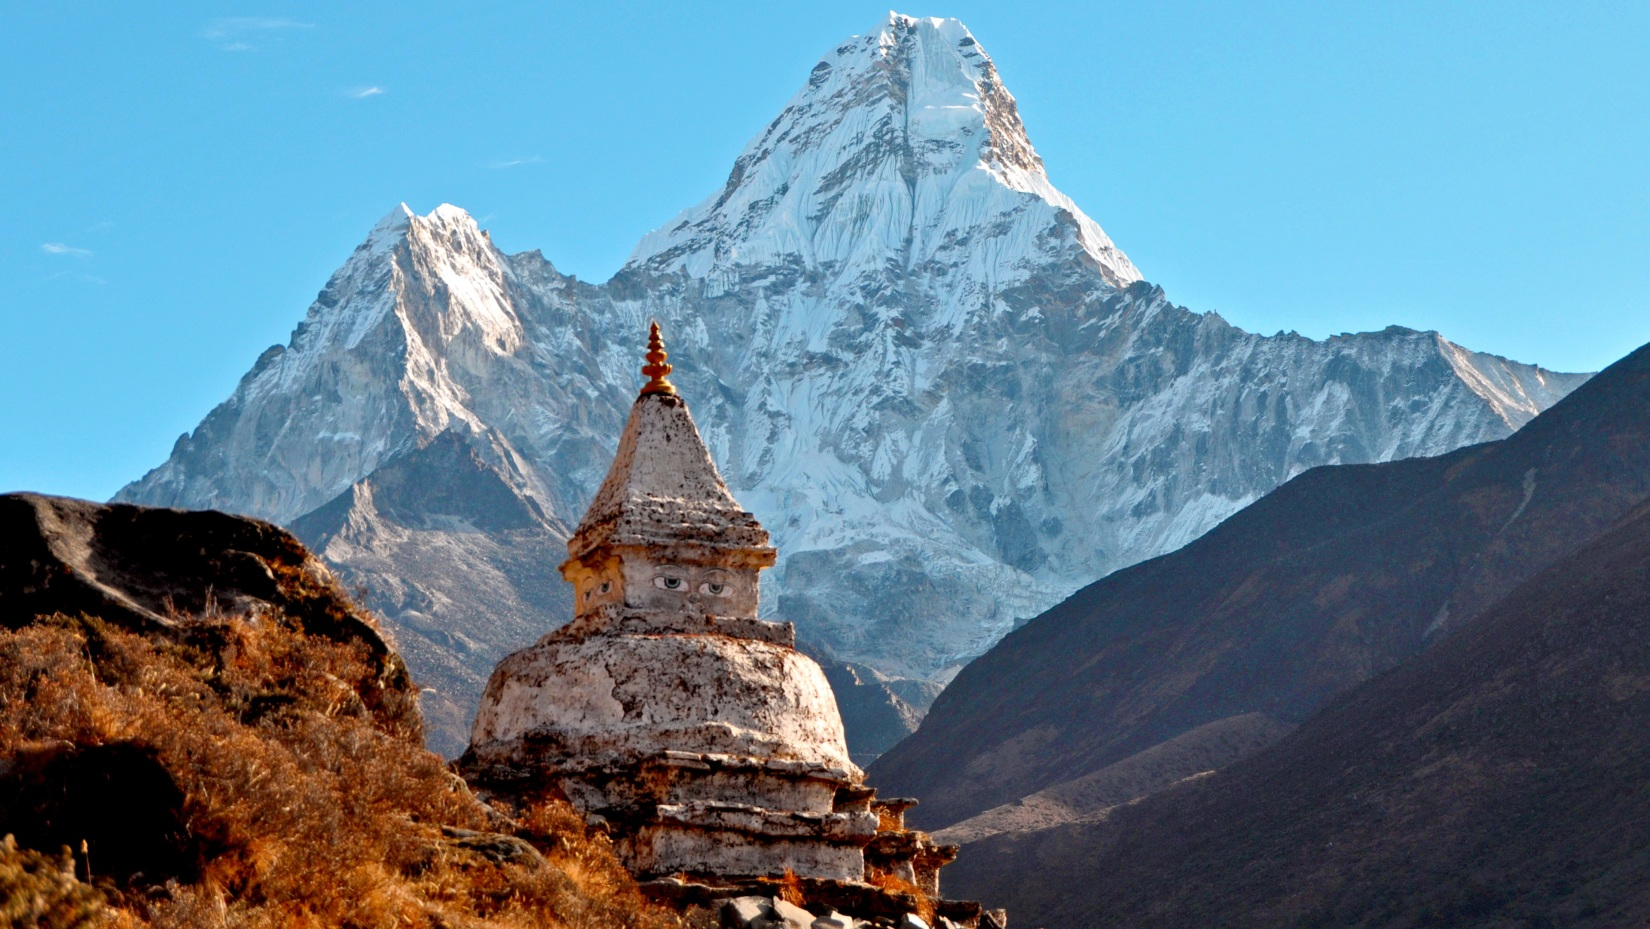 AMA DABLAM EXPEDITION 6814 M